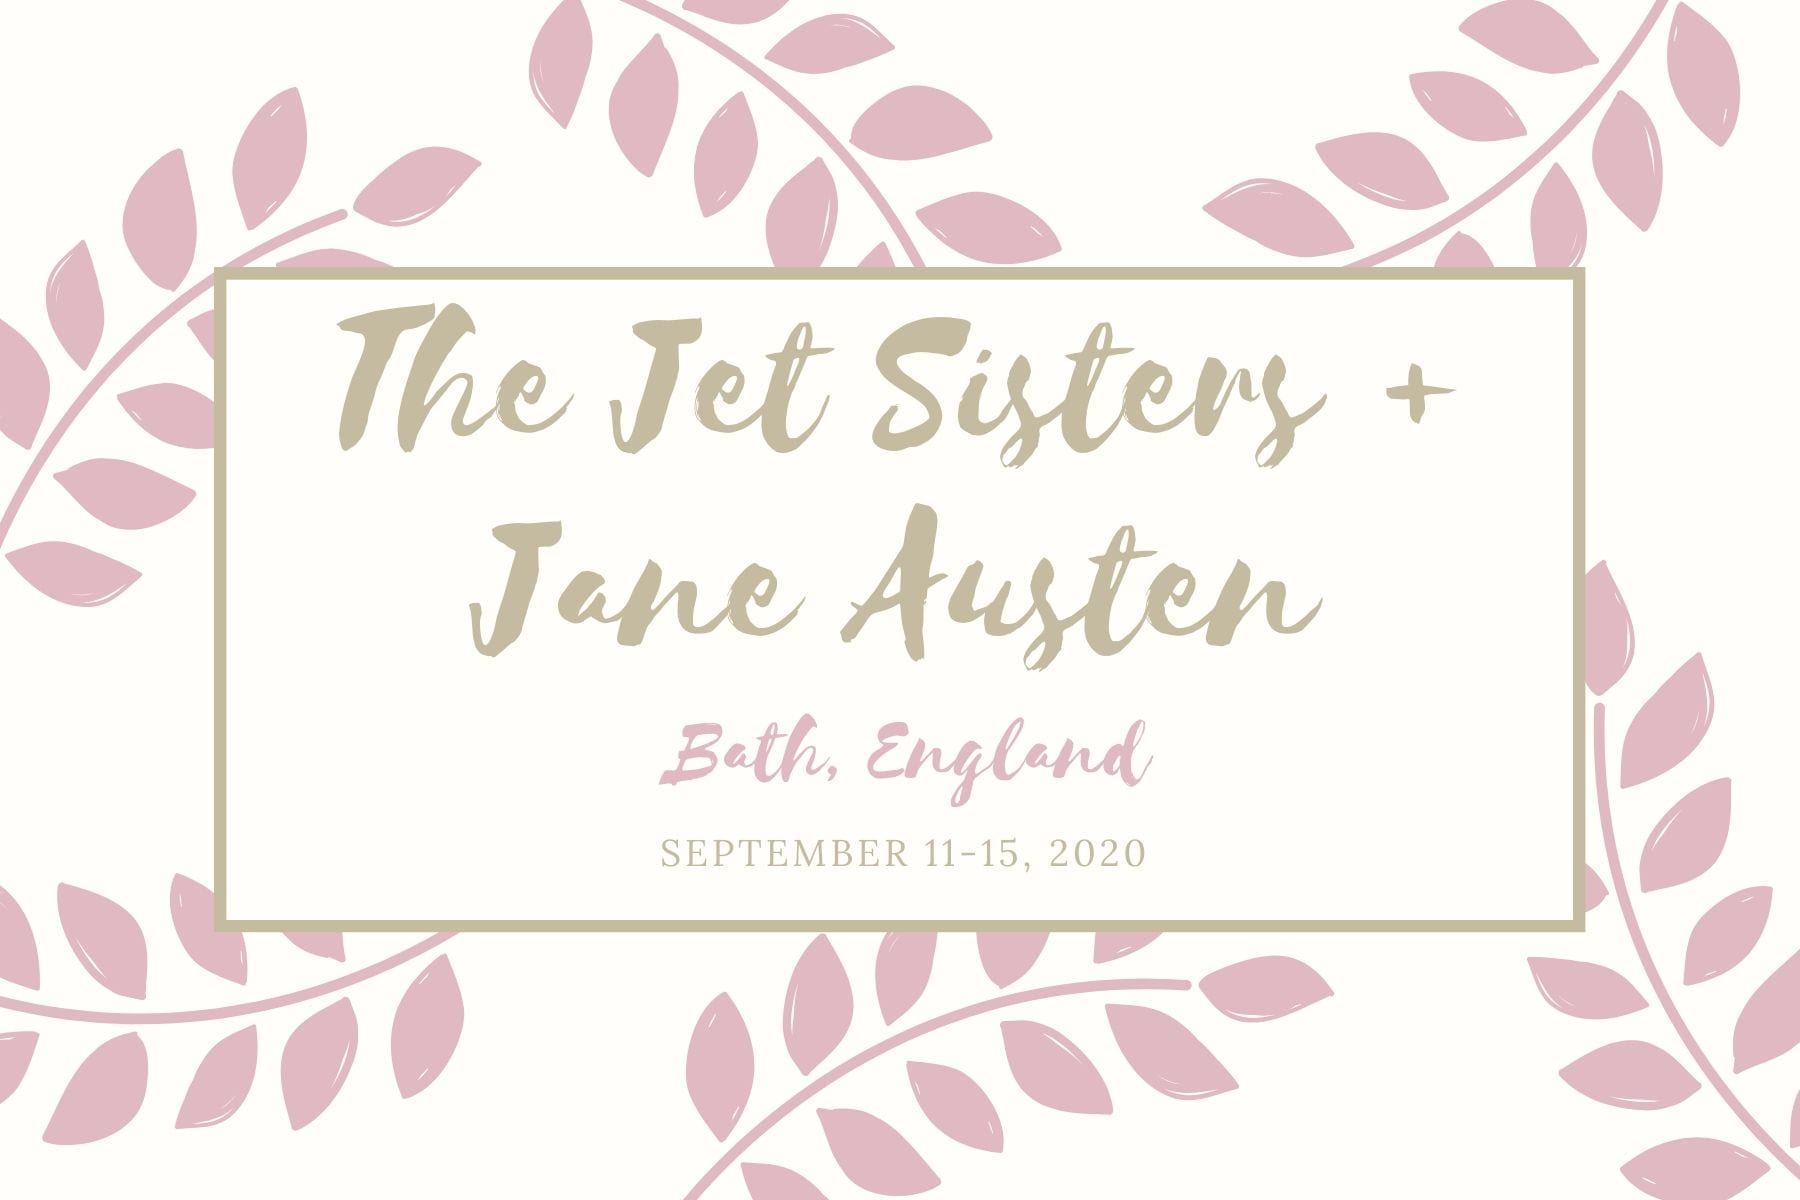 Jane Austen Jet Sisters Group Trip